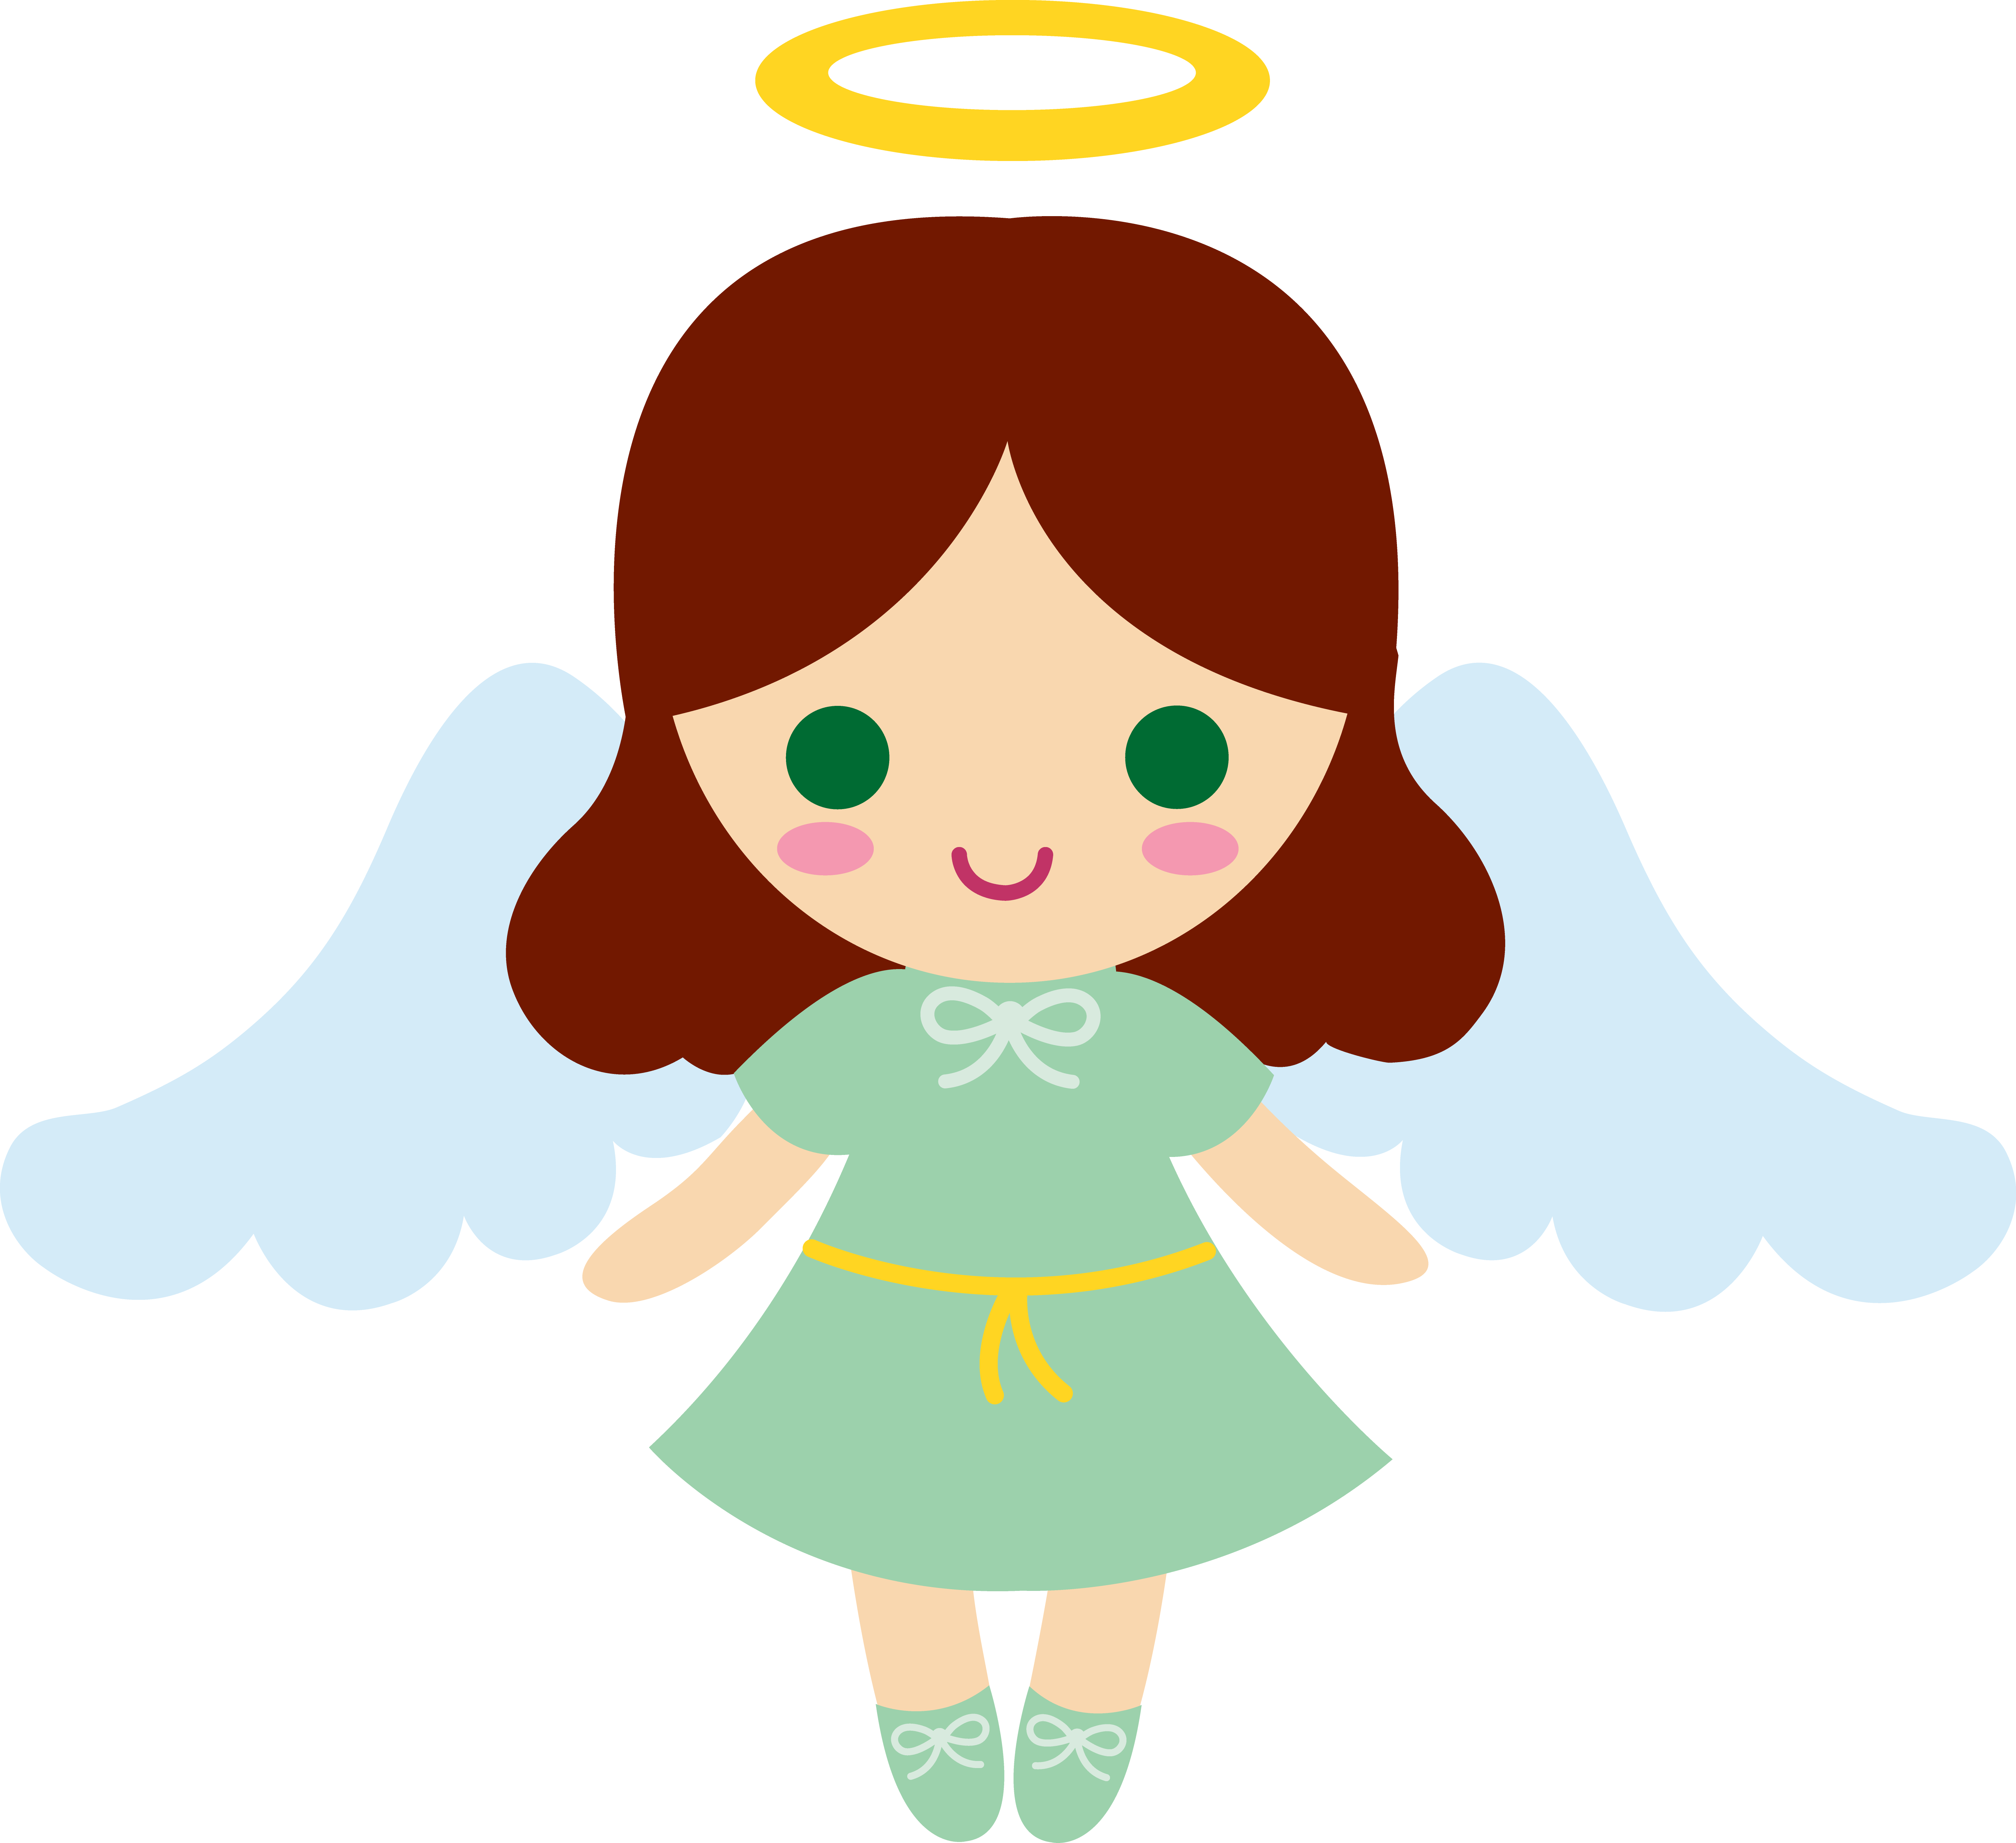 Cat angel clipart image download Cartoon Angel Clipart at GetDrawings.com | Free for personal use ... image download